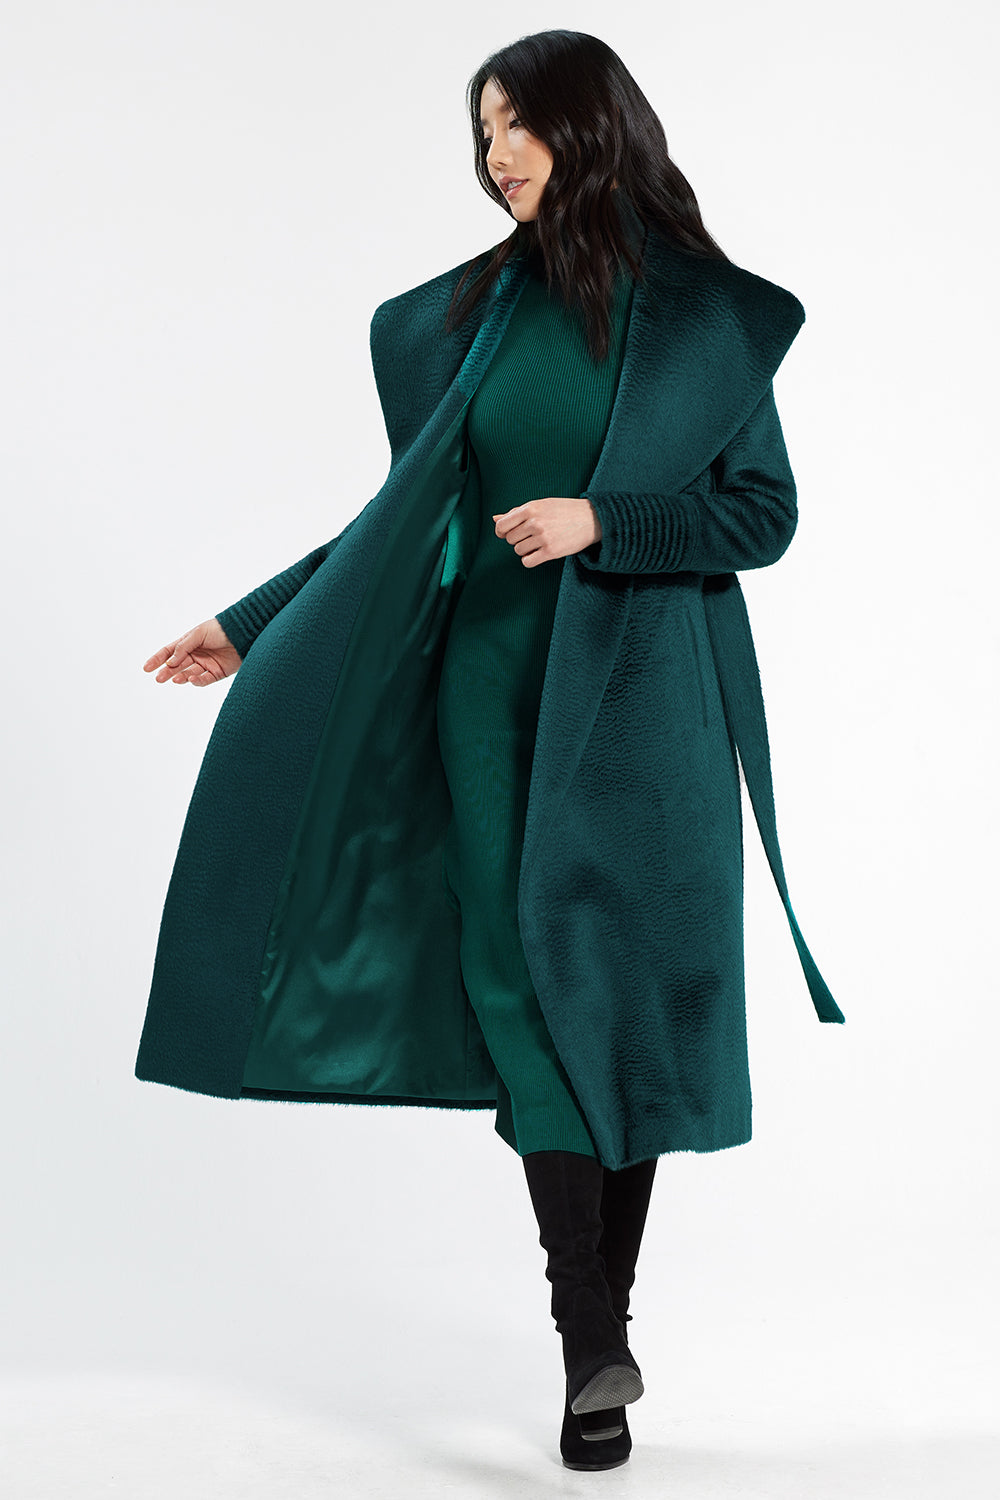 Sentaler Suri Alpaca Long Shawl Collar Wrap Coat featured in Suri Alpaca and available in Emerald Green. Seen open.